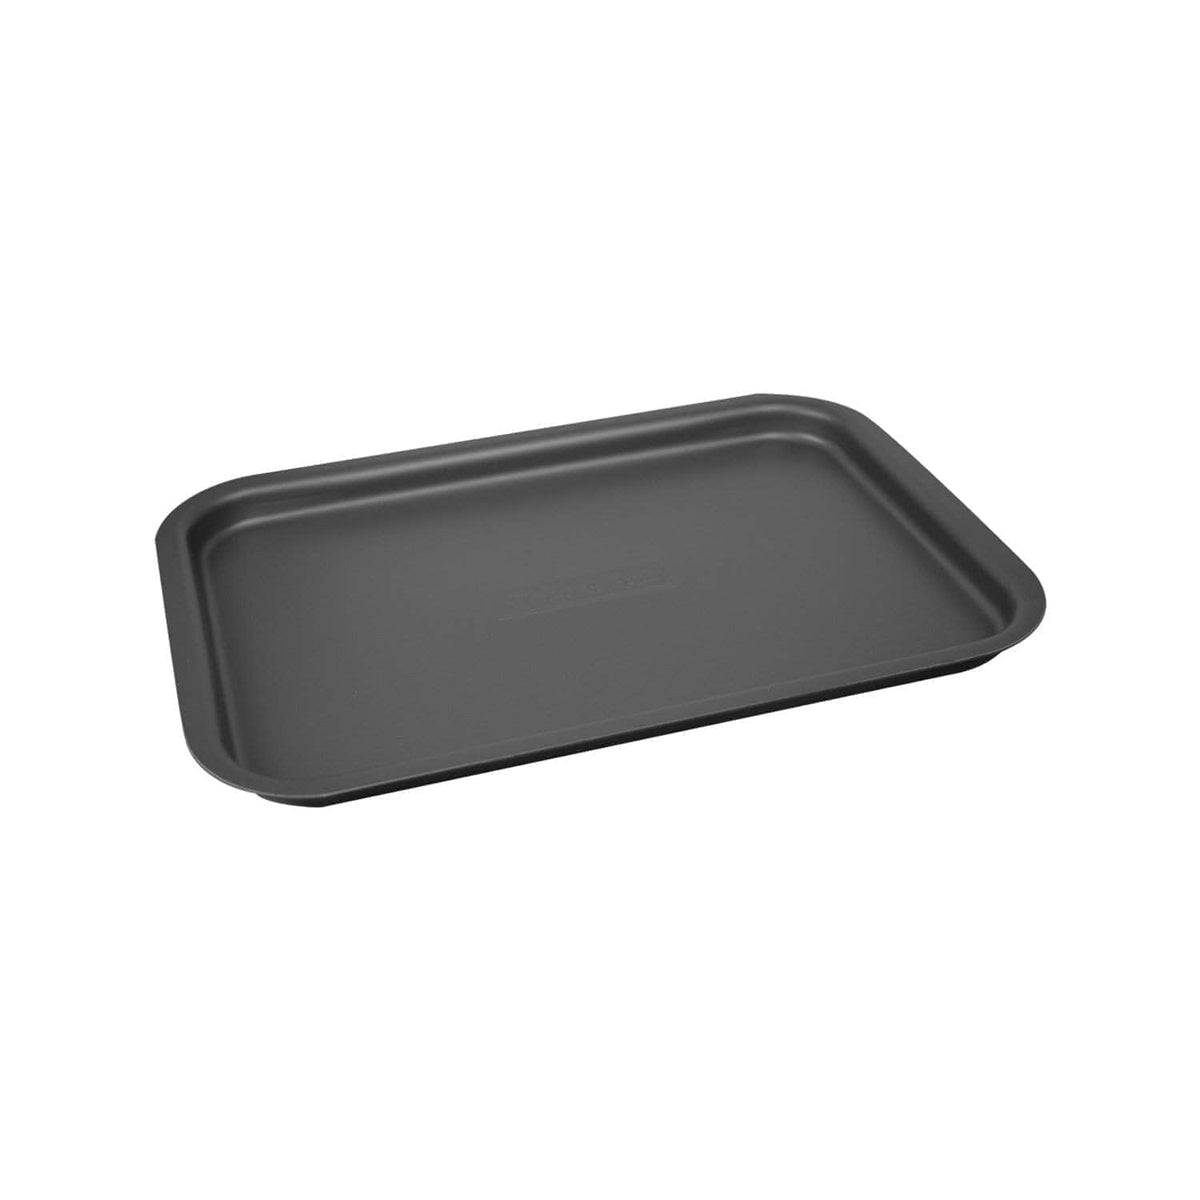 'Fits on runners' baking tray for use with Aga range cookers 'half oven' size I only need an individual tray thank you! / Black